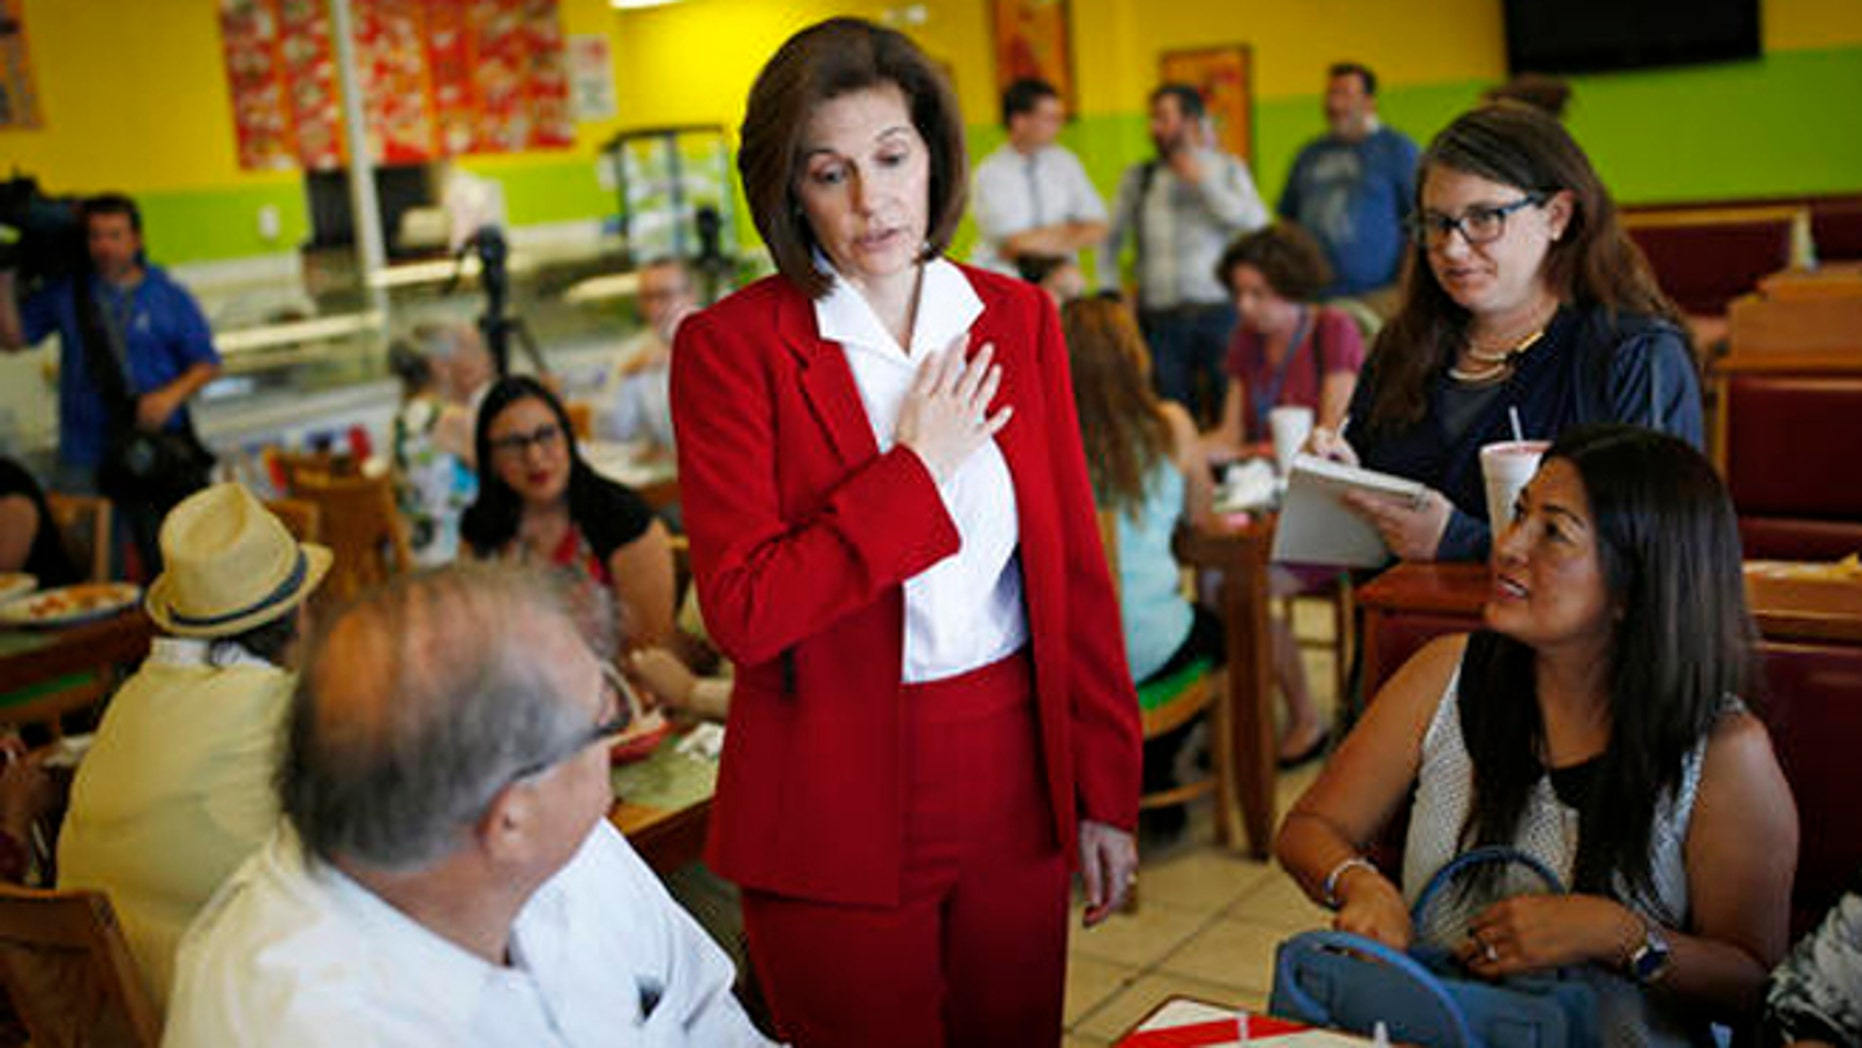 U.S. Senate candidate Catherine Cortez Masto during an event in Las Vegas on Tuesday, May 31, 2016.